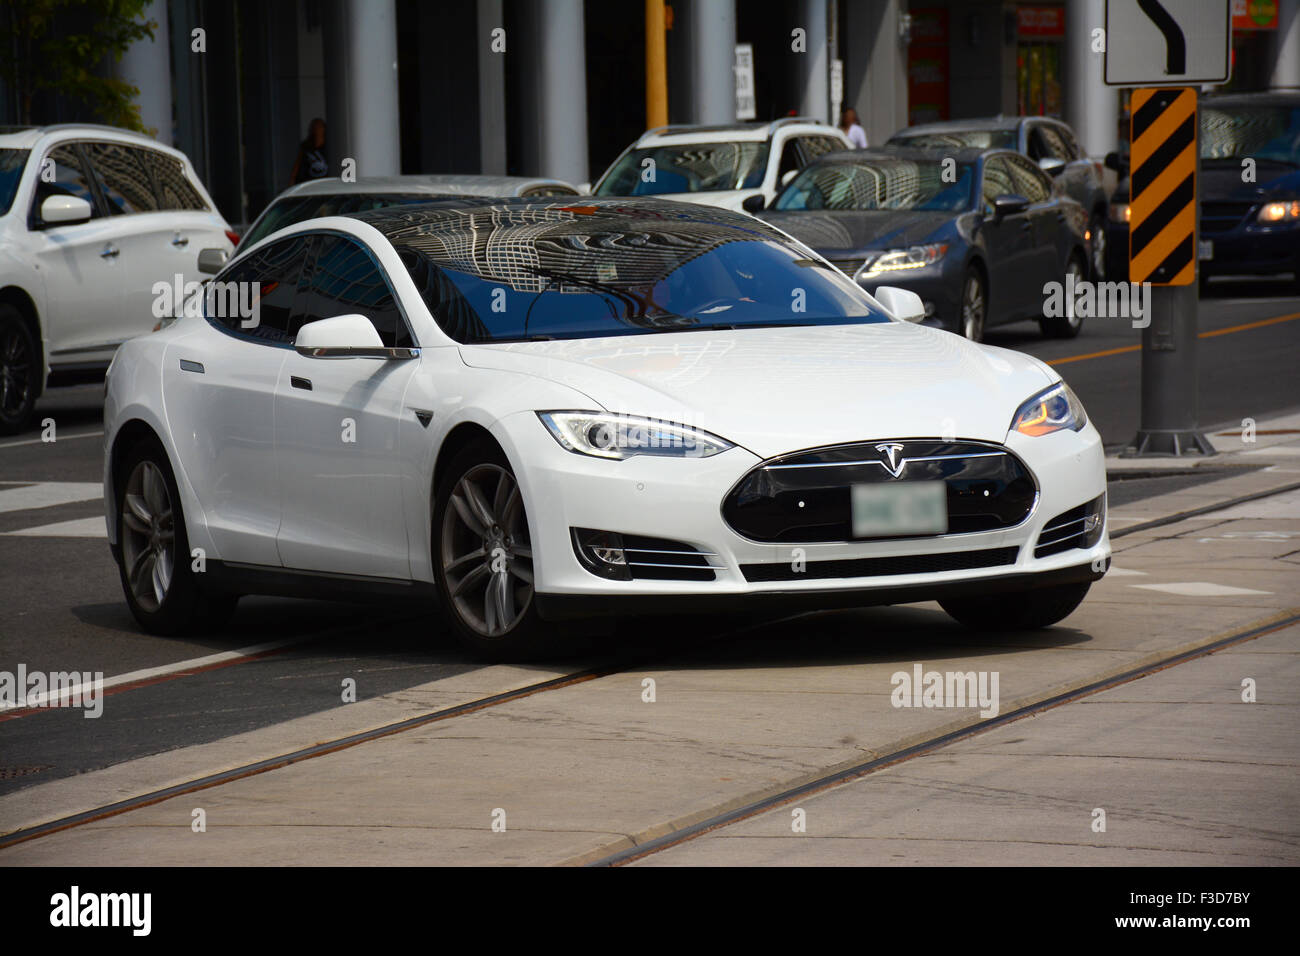 Tesla, Electric car in Toronto streets, Canada - Stock Image